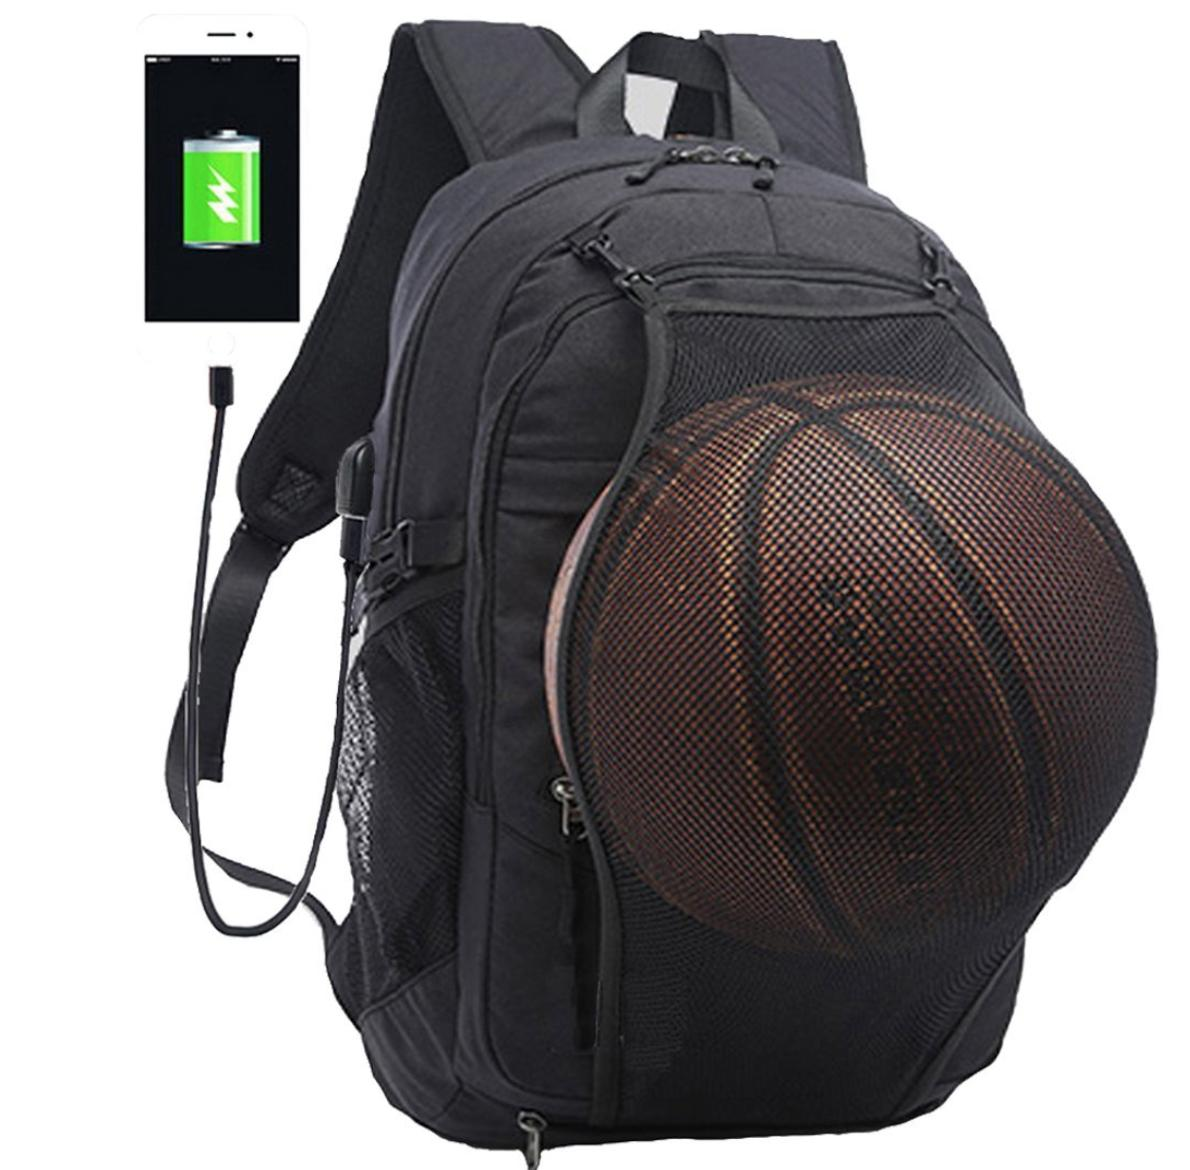 Business Laptop Backpack, Anti Theft Travel Bag with Basketb